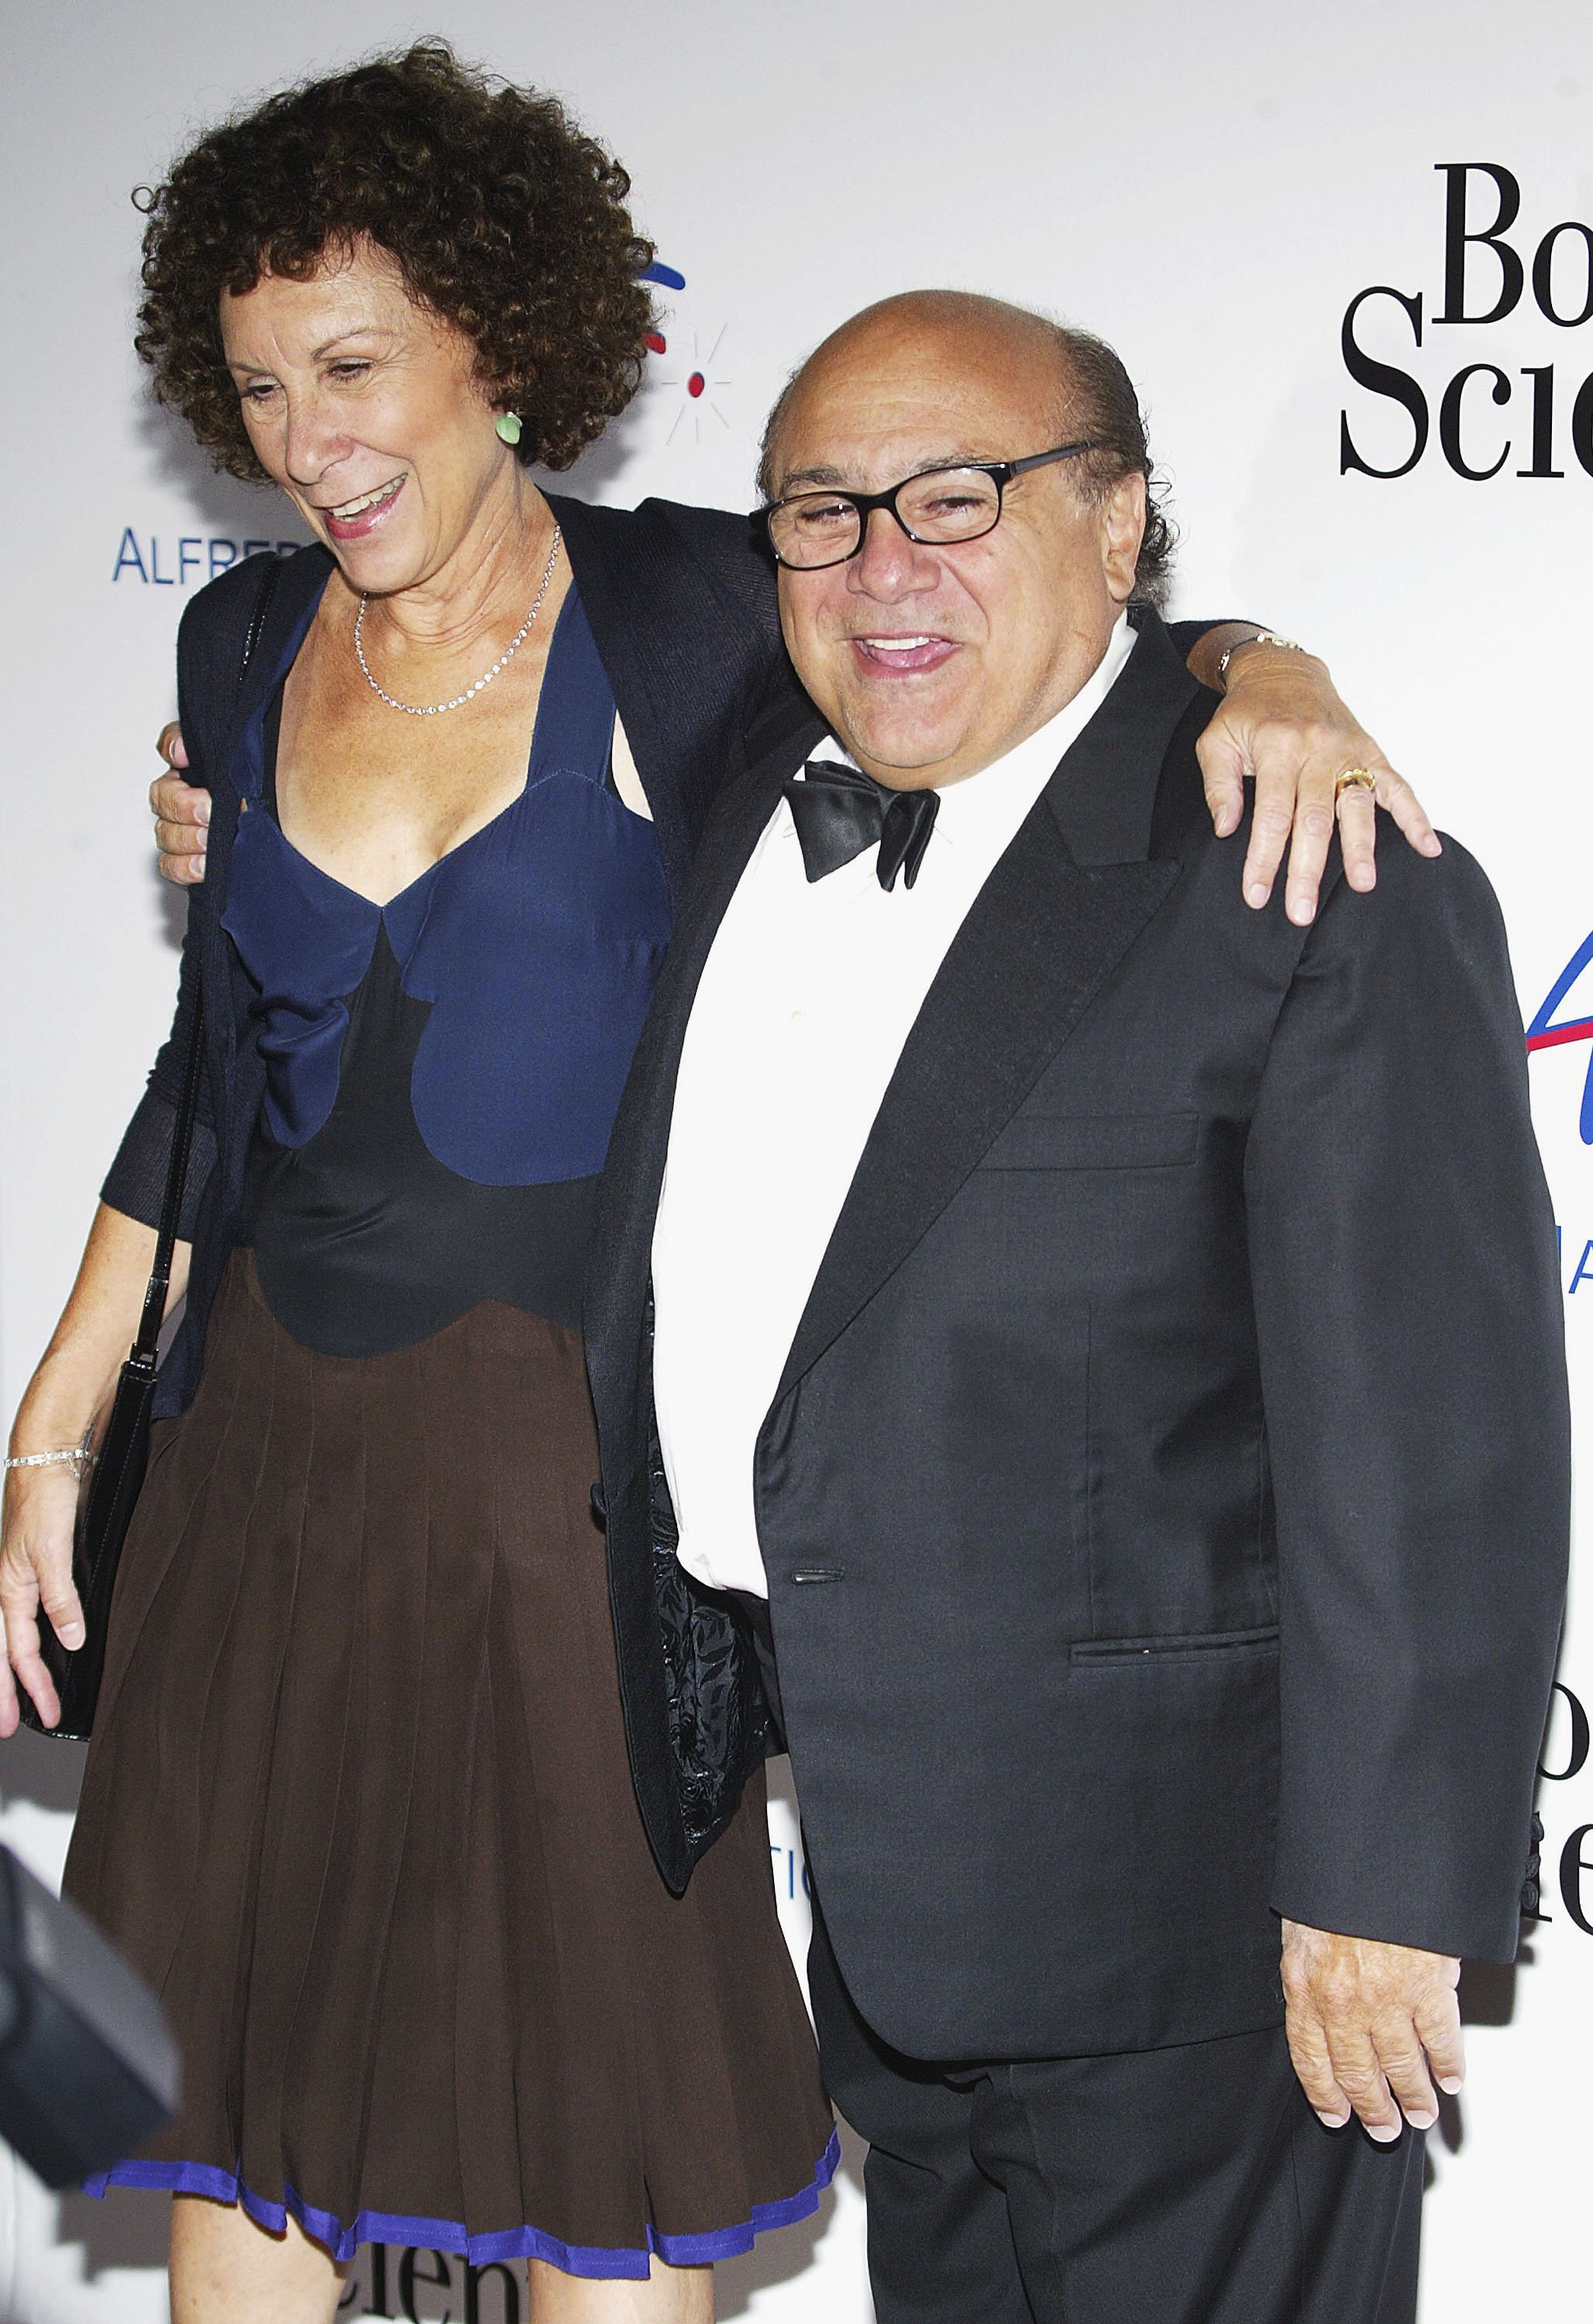 Rhea Perlman and Dannny Devito attend The Alfred Mann Foundation's Evening of Innovation and Inspiration on September 10, 2005 | Photo: GettyImages